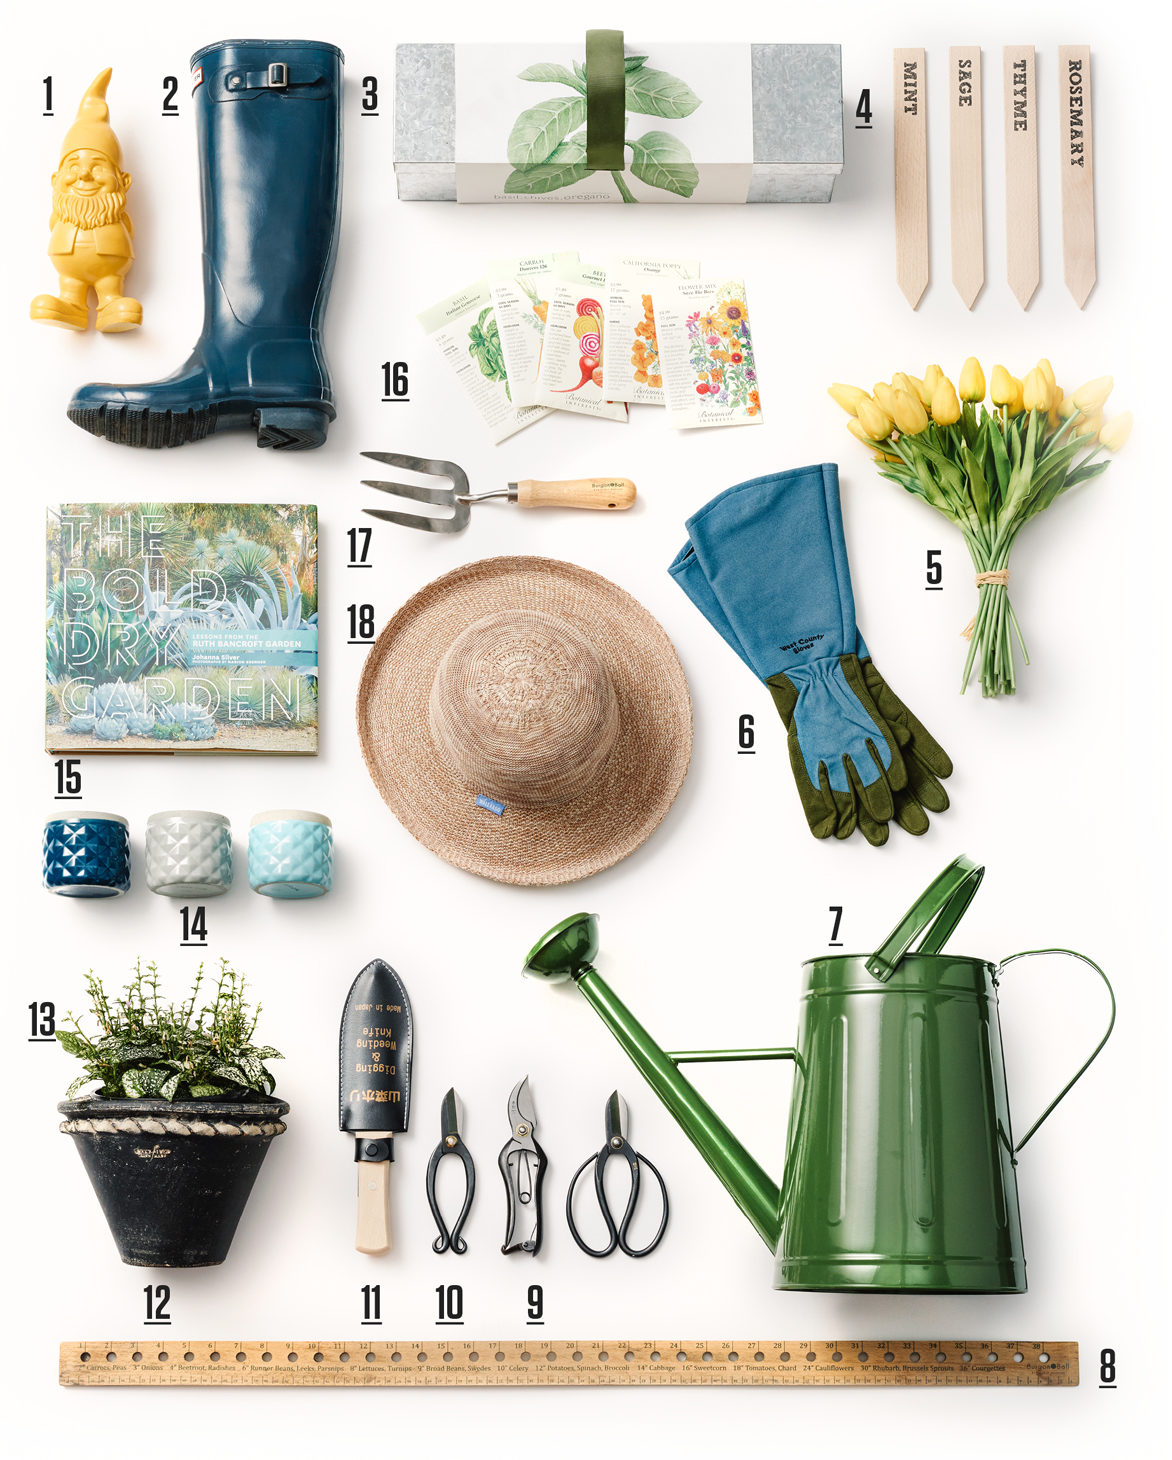 Garden Gear We Love ( 5280 Home)